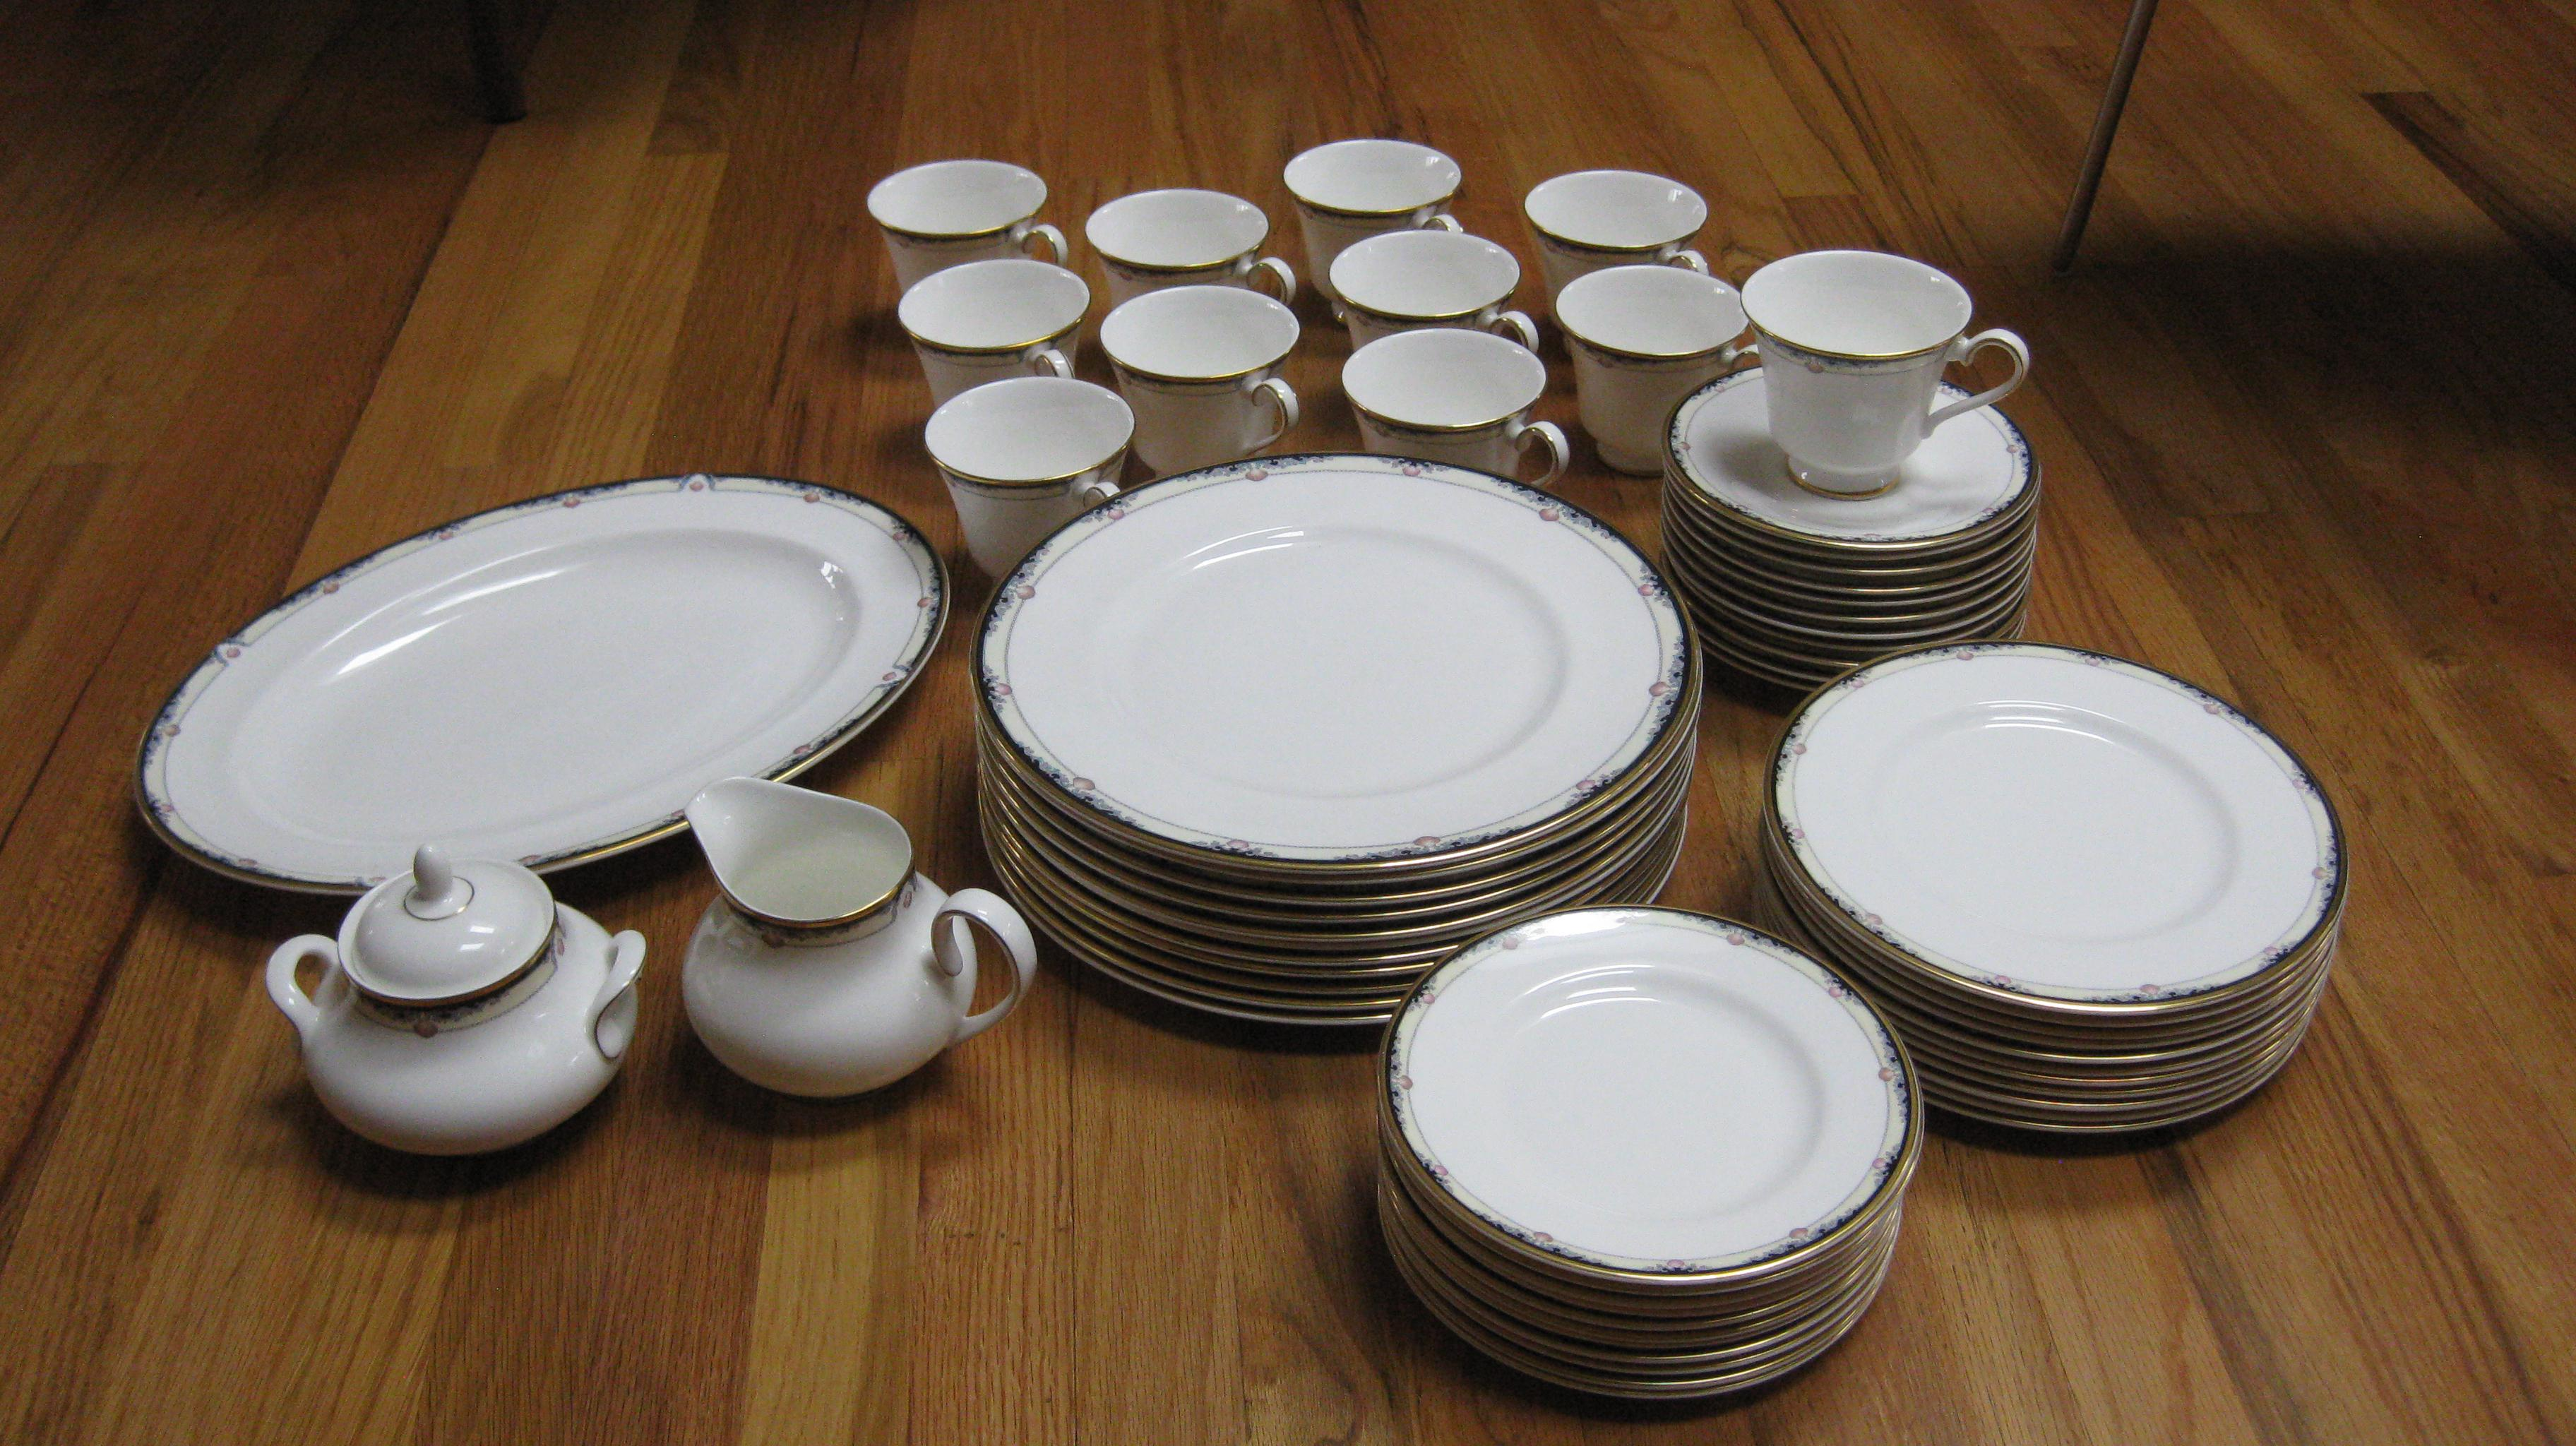 Royal Doulton Rhodes China Dinnerware Set - Image 5 of 5  sc 1 st  Chairish & Royal Doulton Rhodes China Dinnerware Set | Chairish